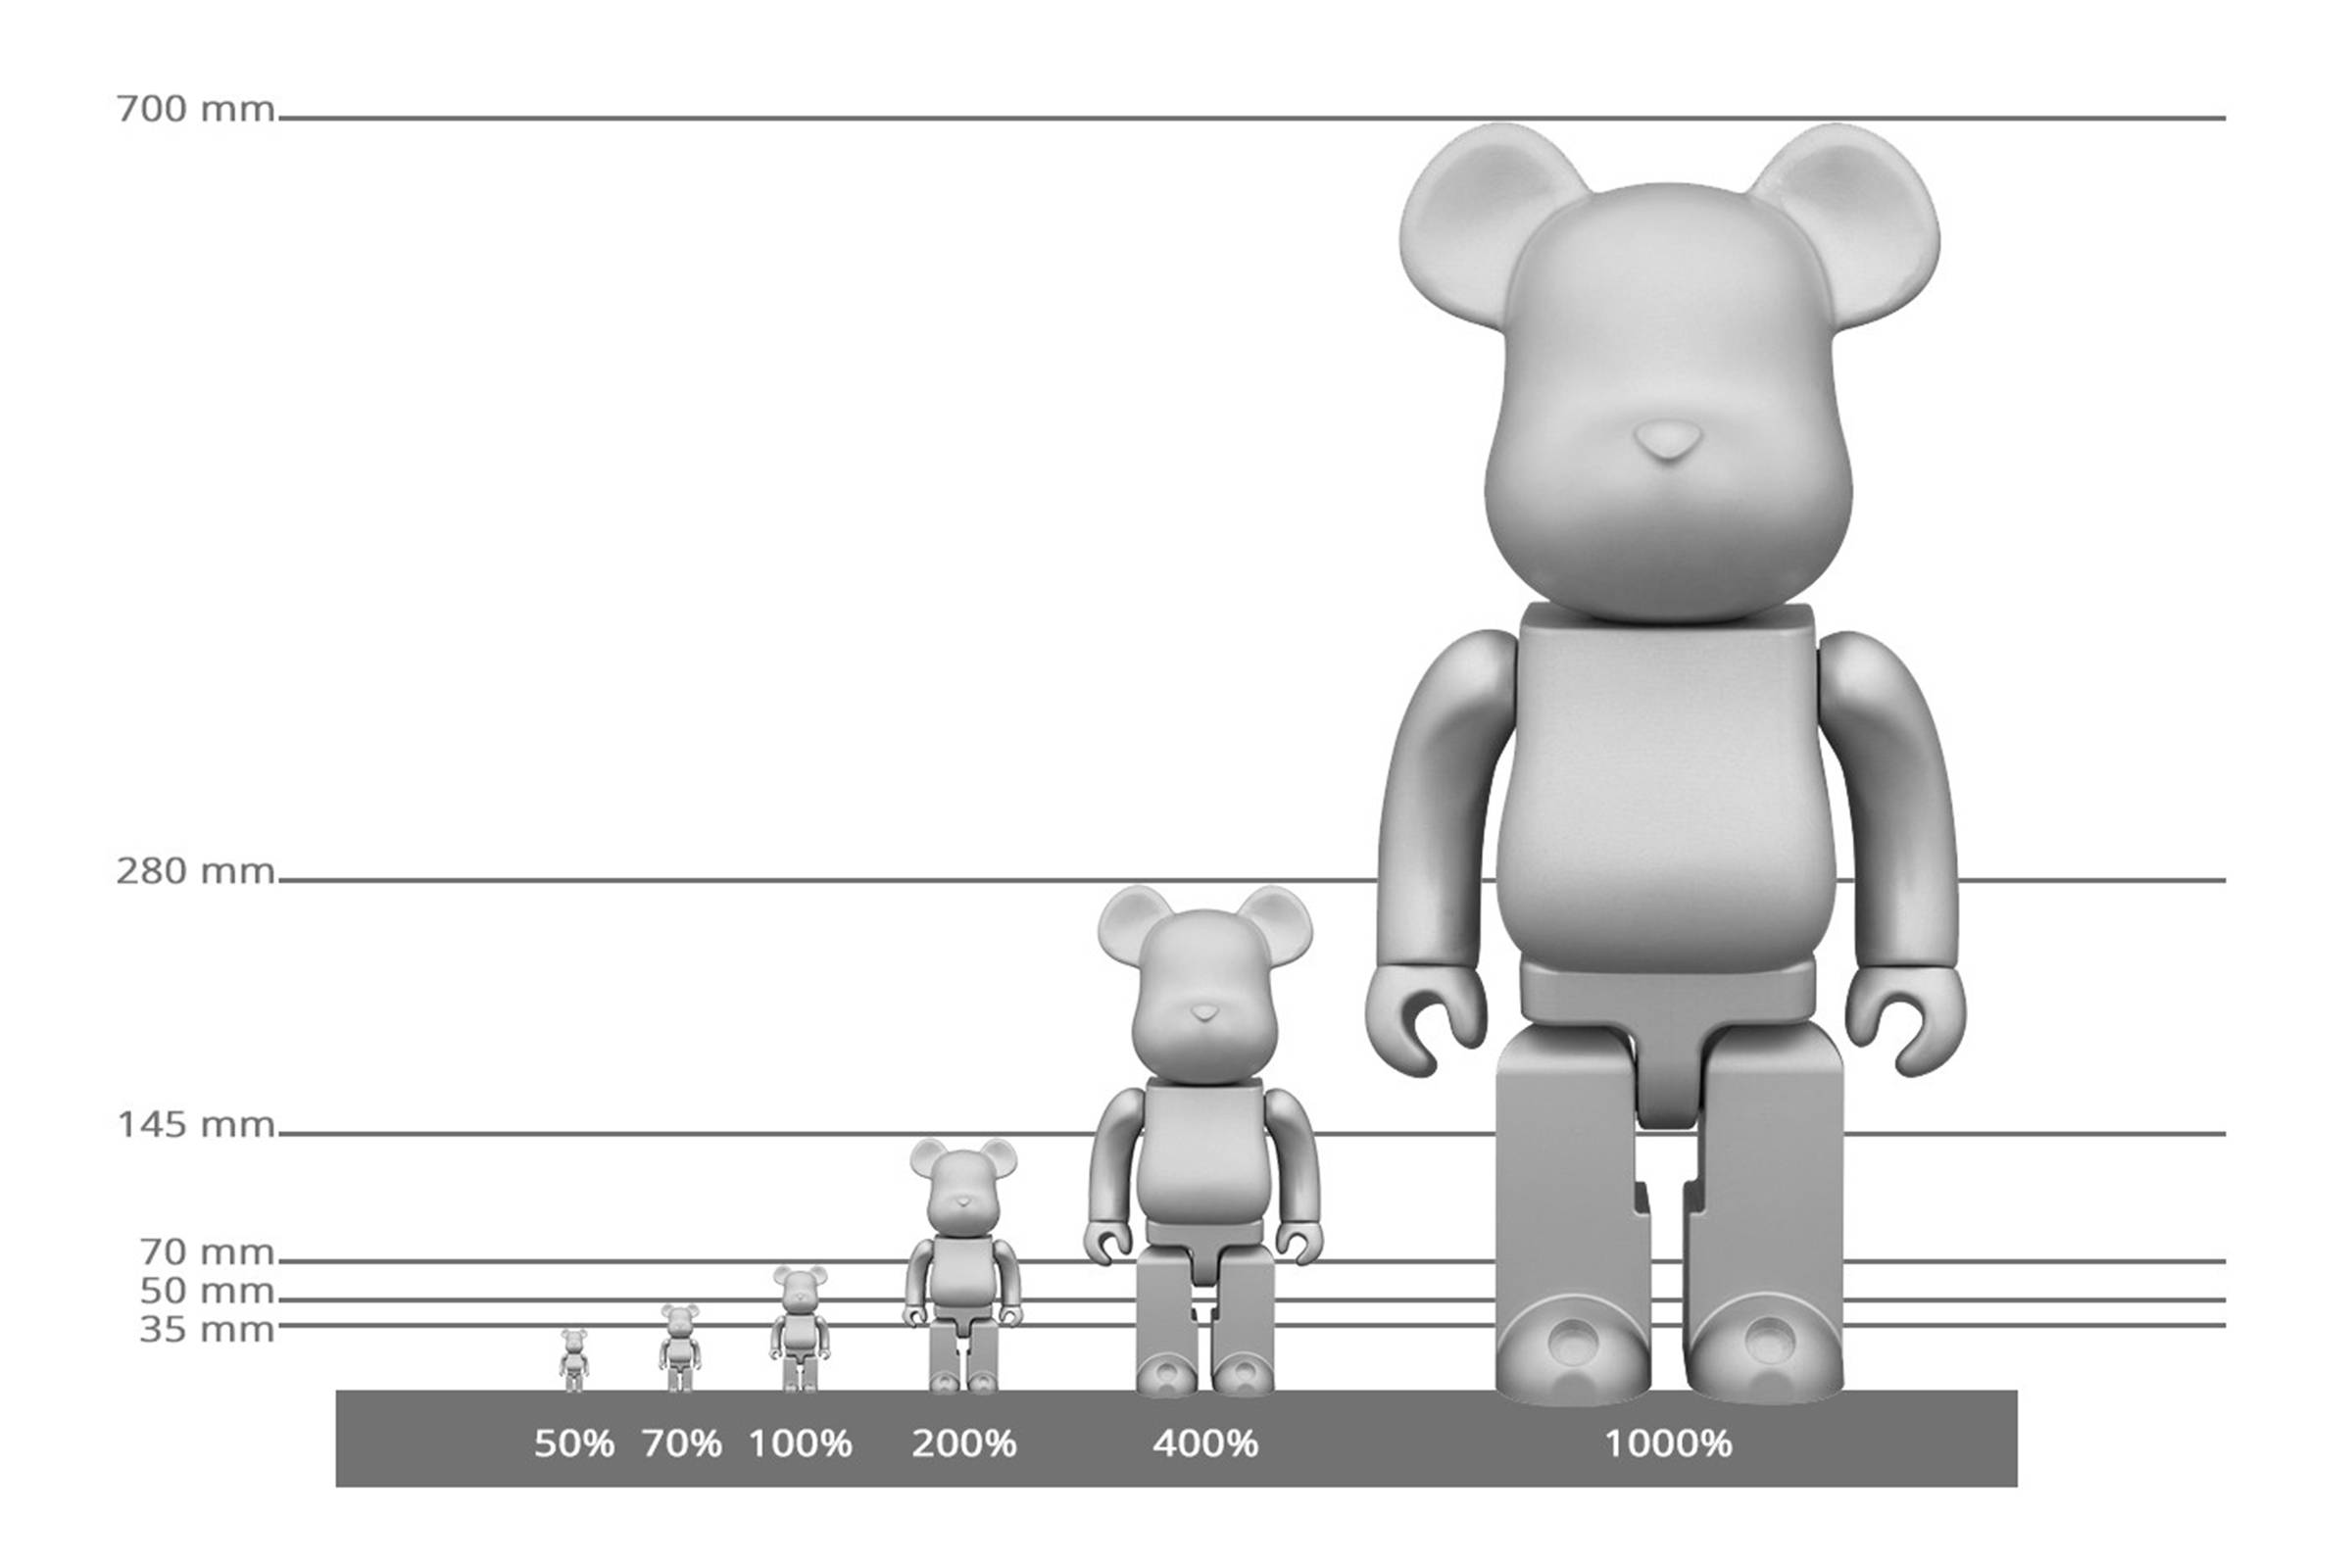 Typical BE@RBRICK sizes